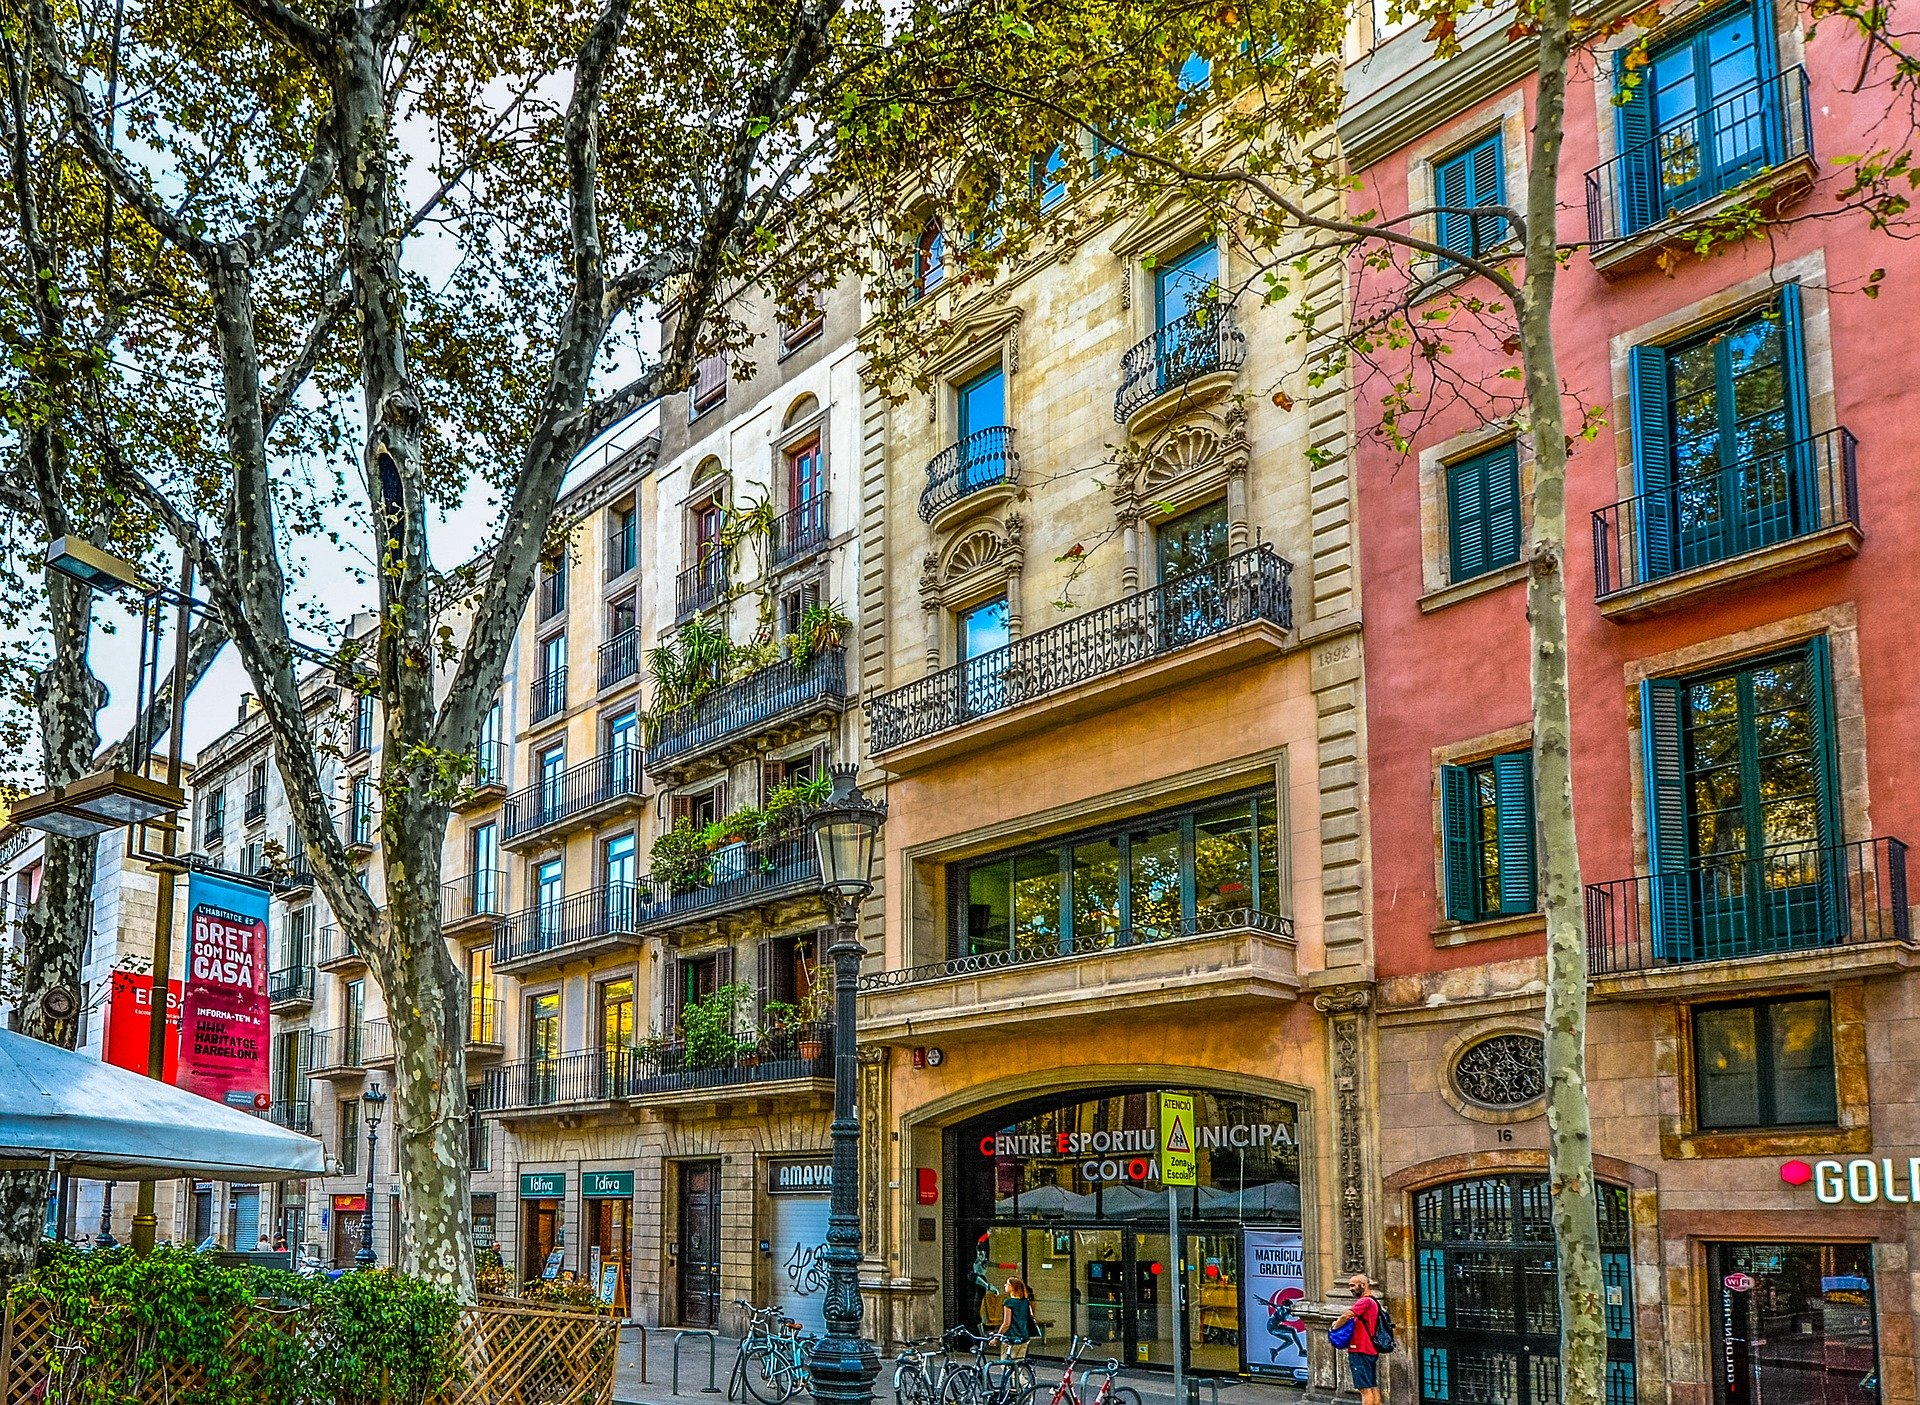 News: Real Estate in Barcelona and Spain - January 2020 2 News: Real Estate in Barcelona and Spain - January 2020